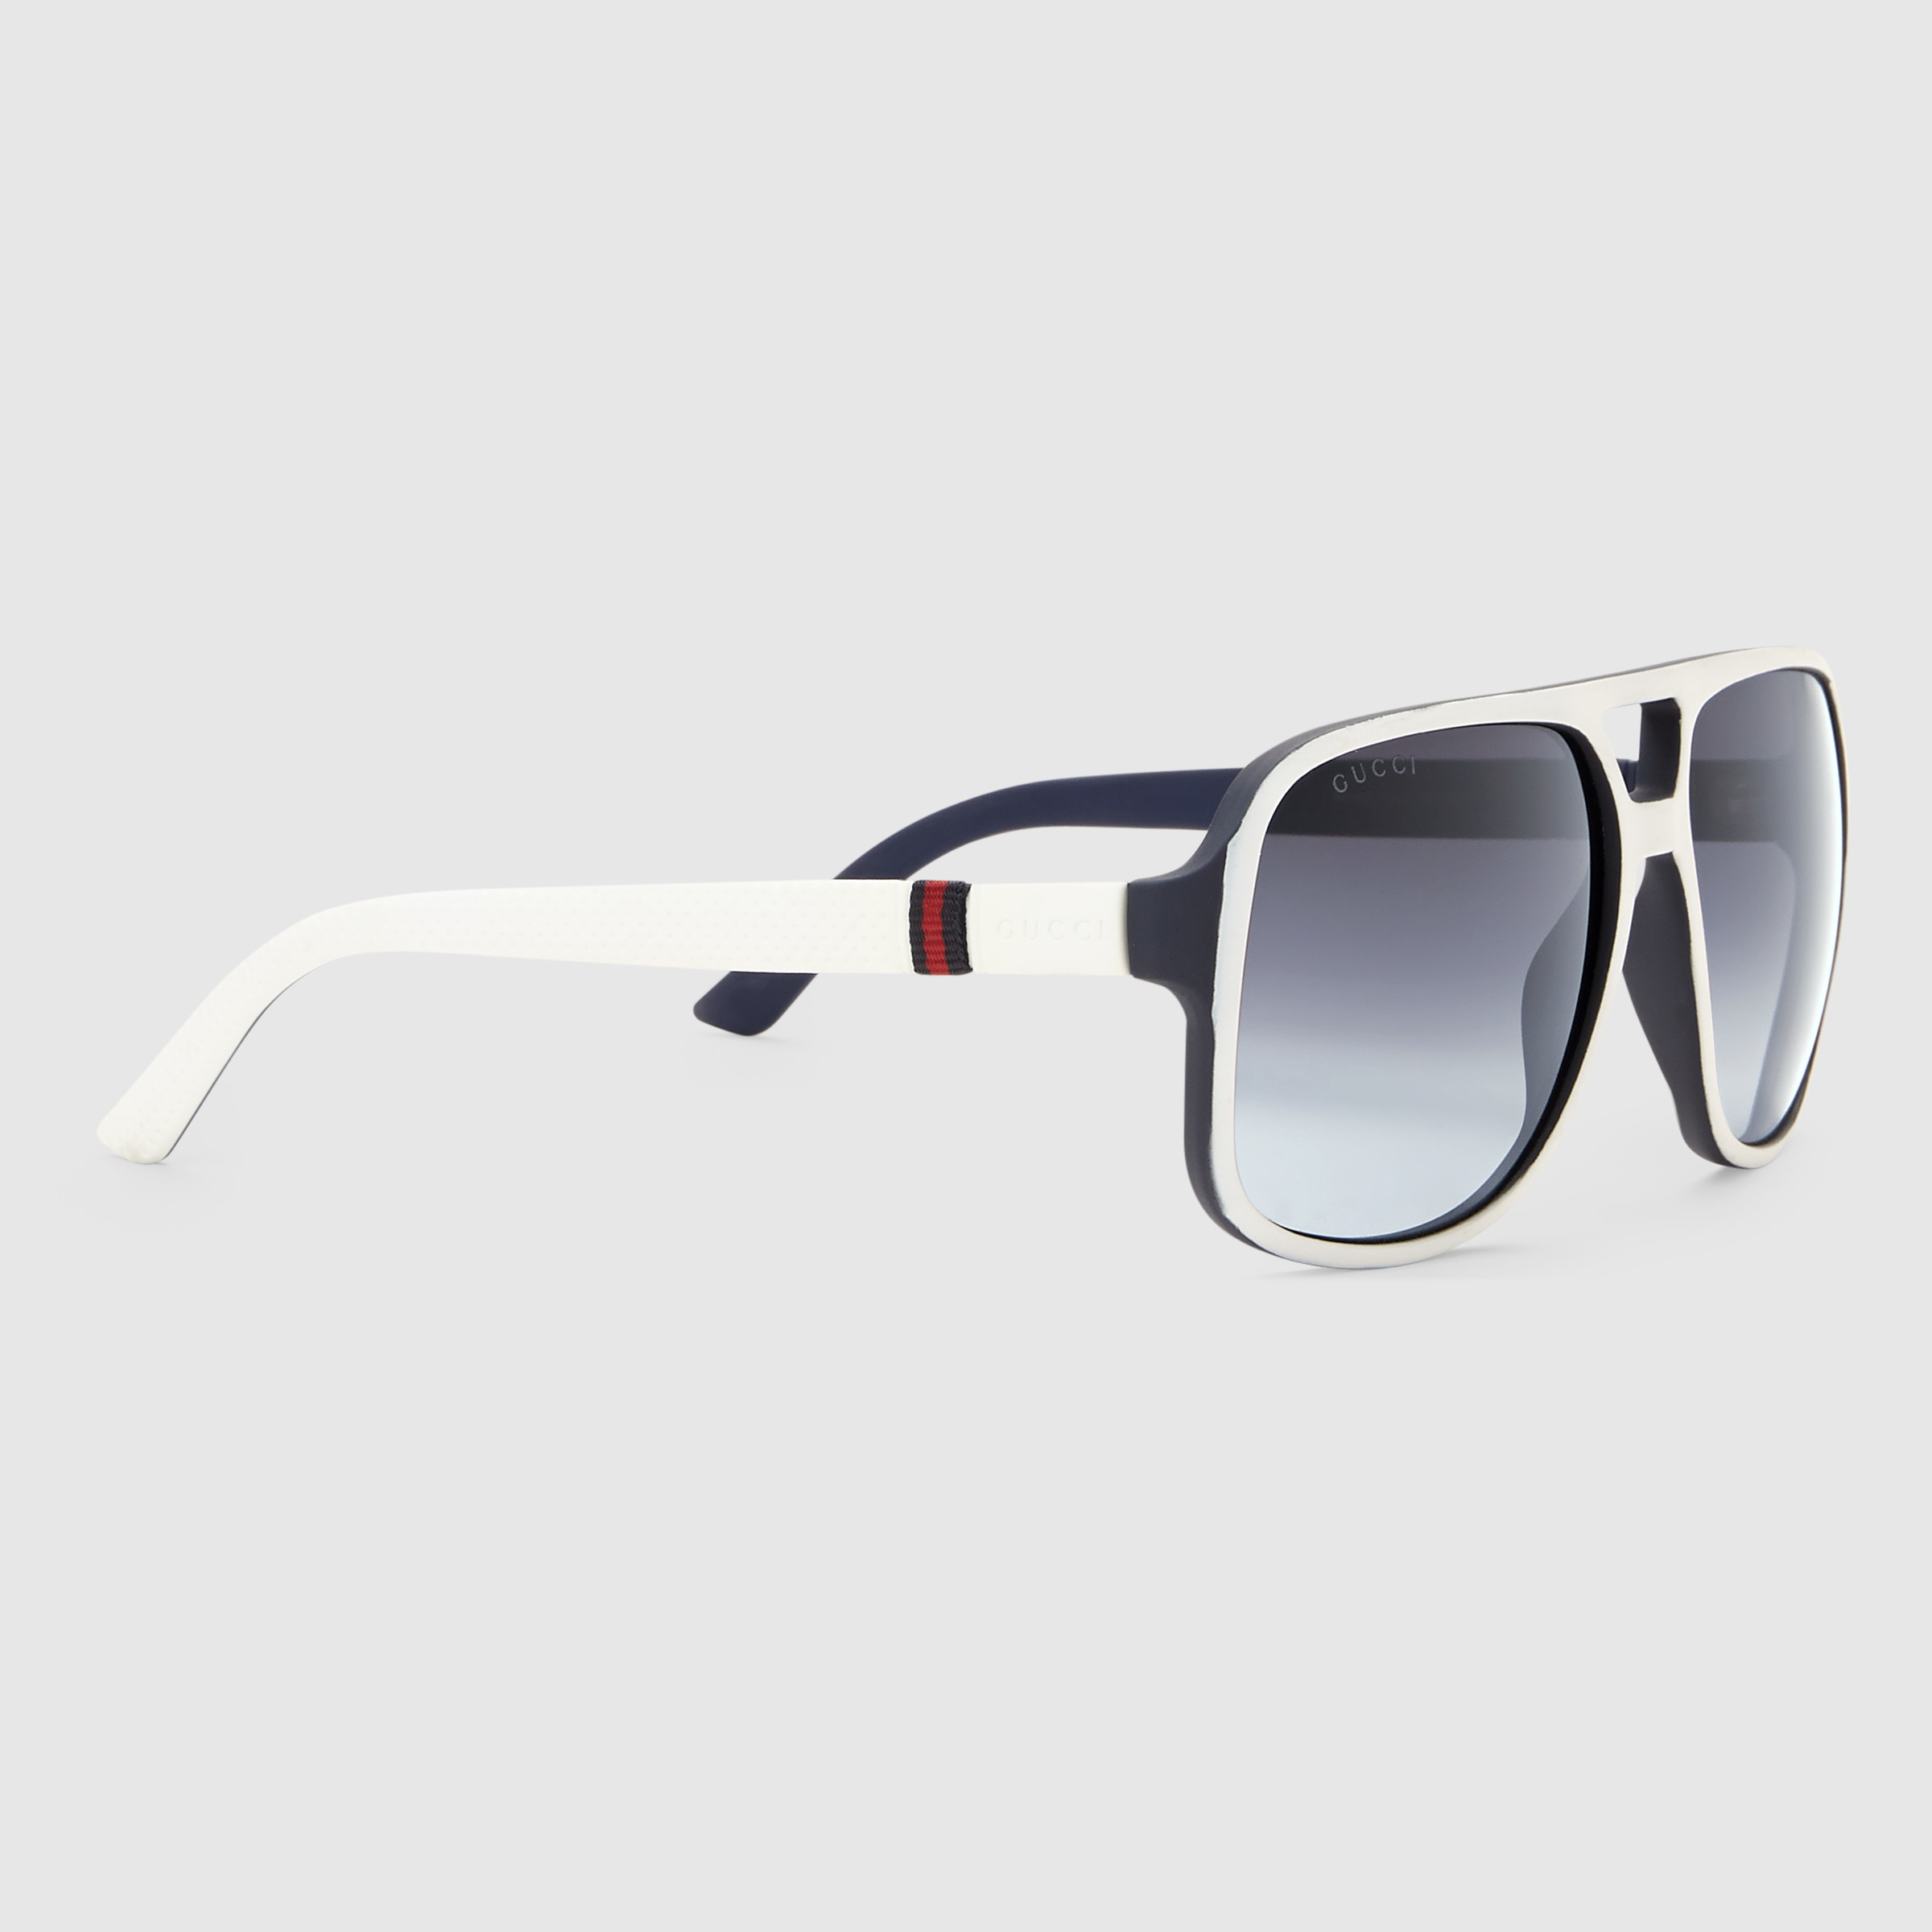 Lyst - Gucci Rectangular Frame Sunglasses With Web in White for Men